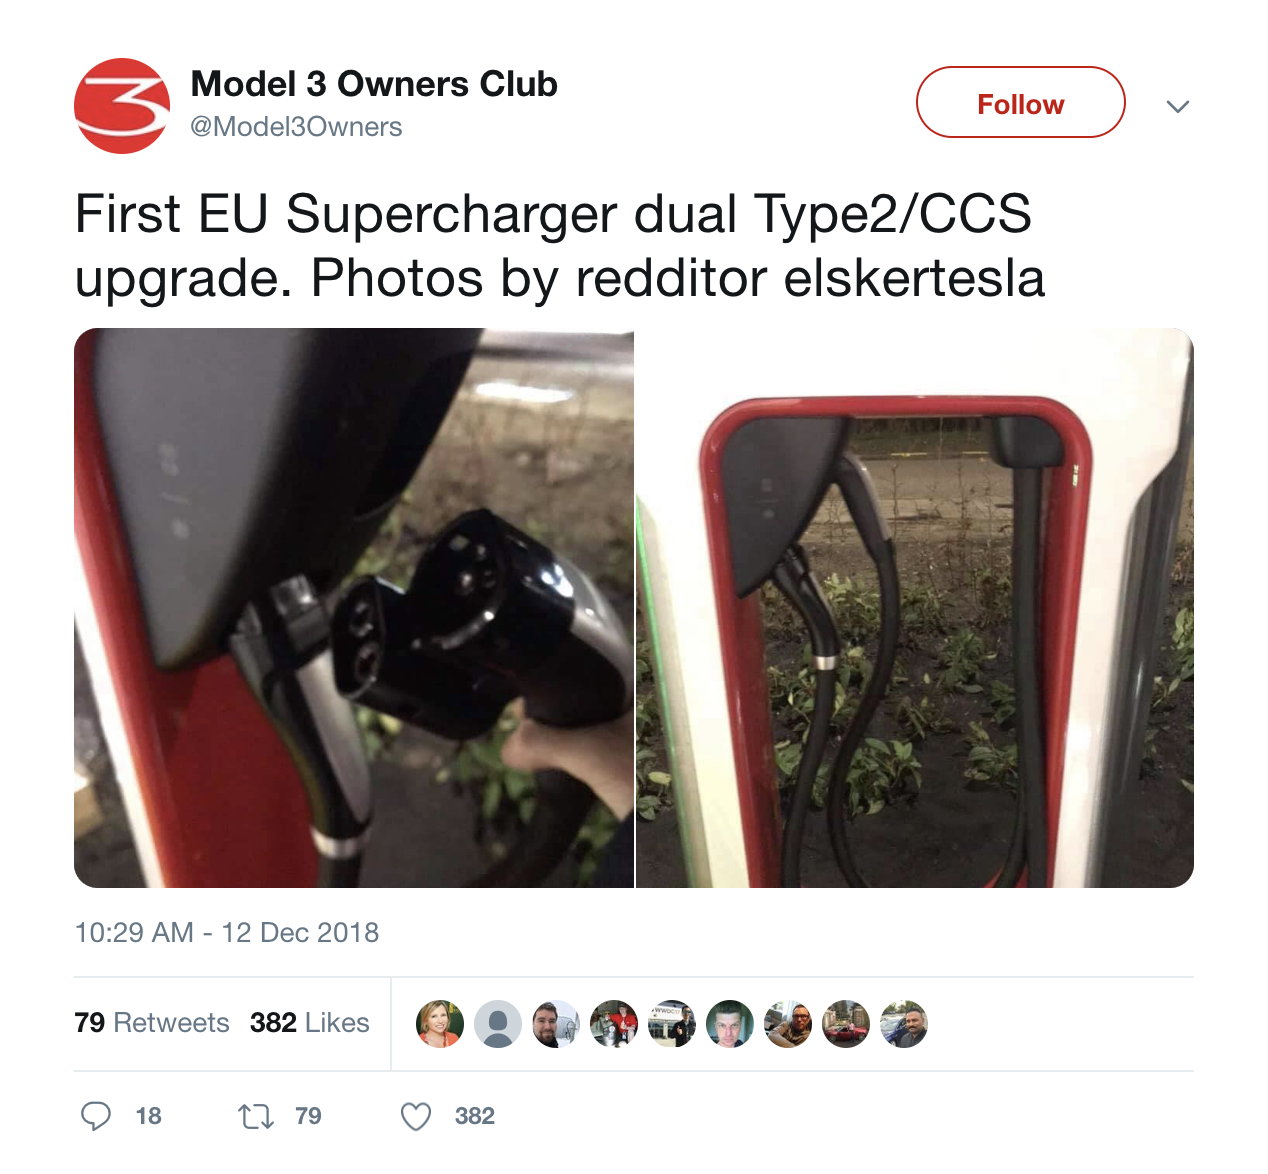 Twitter Model 3 Owners Club